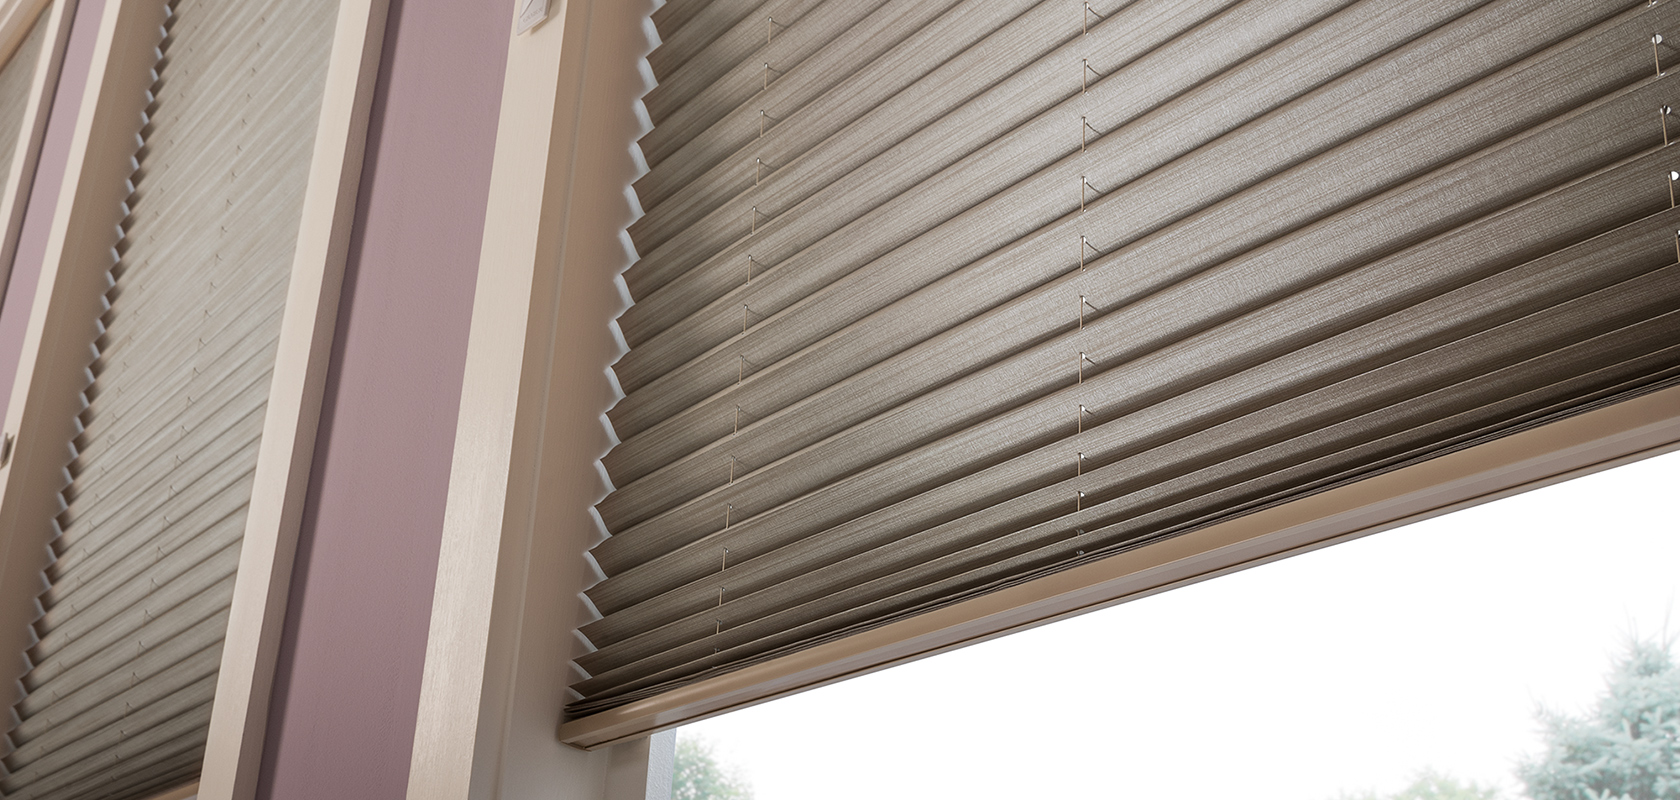 national study need reveals news htm show window cord blind ban cpsc blinds for deaths